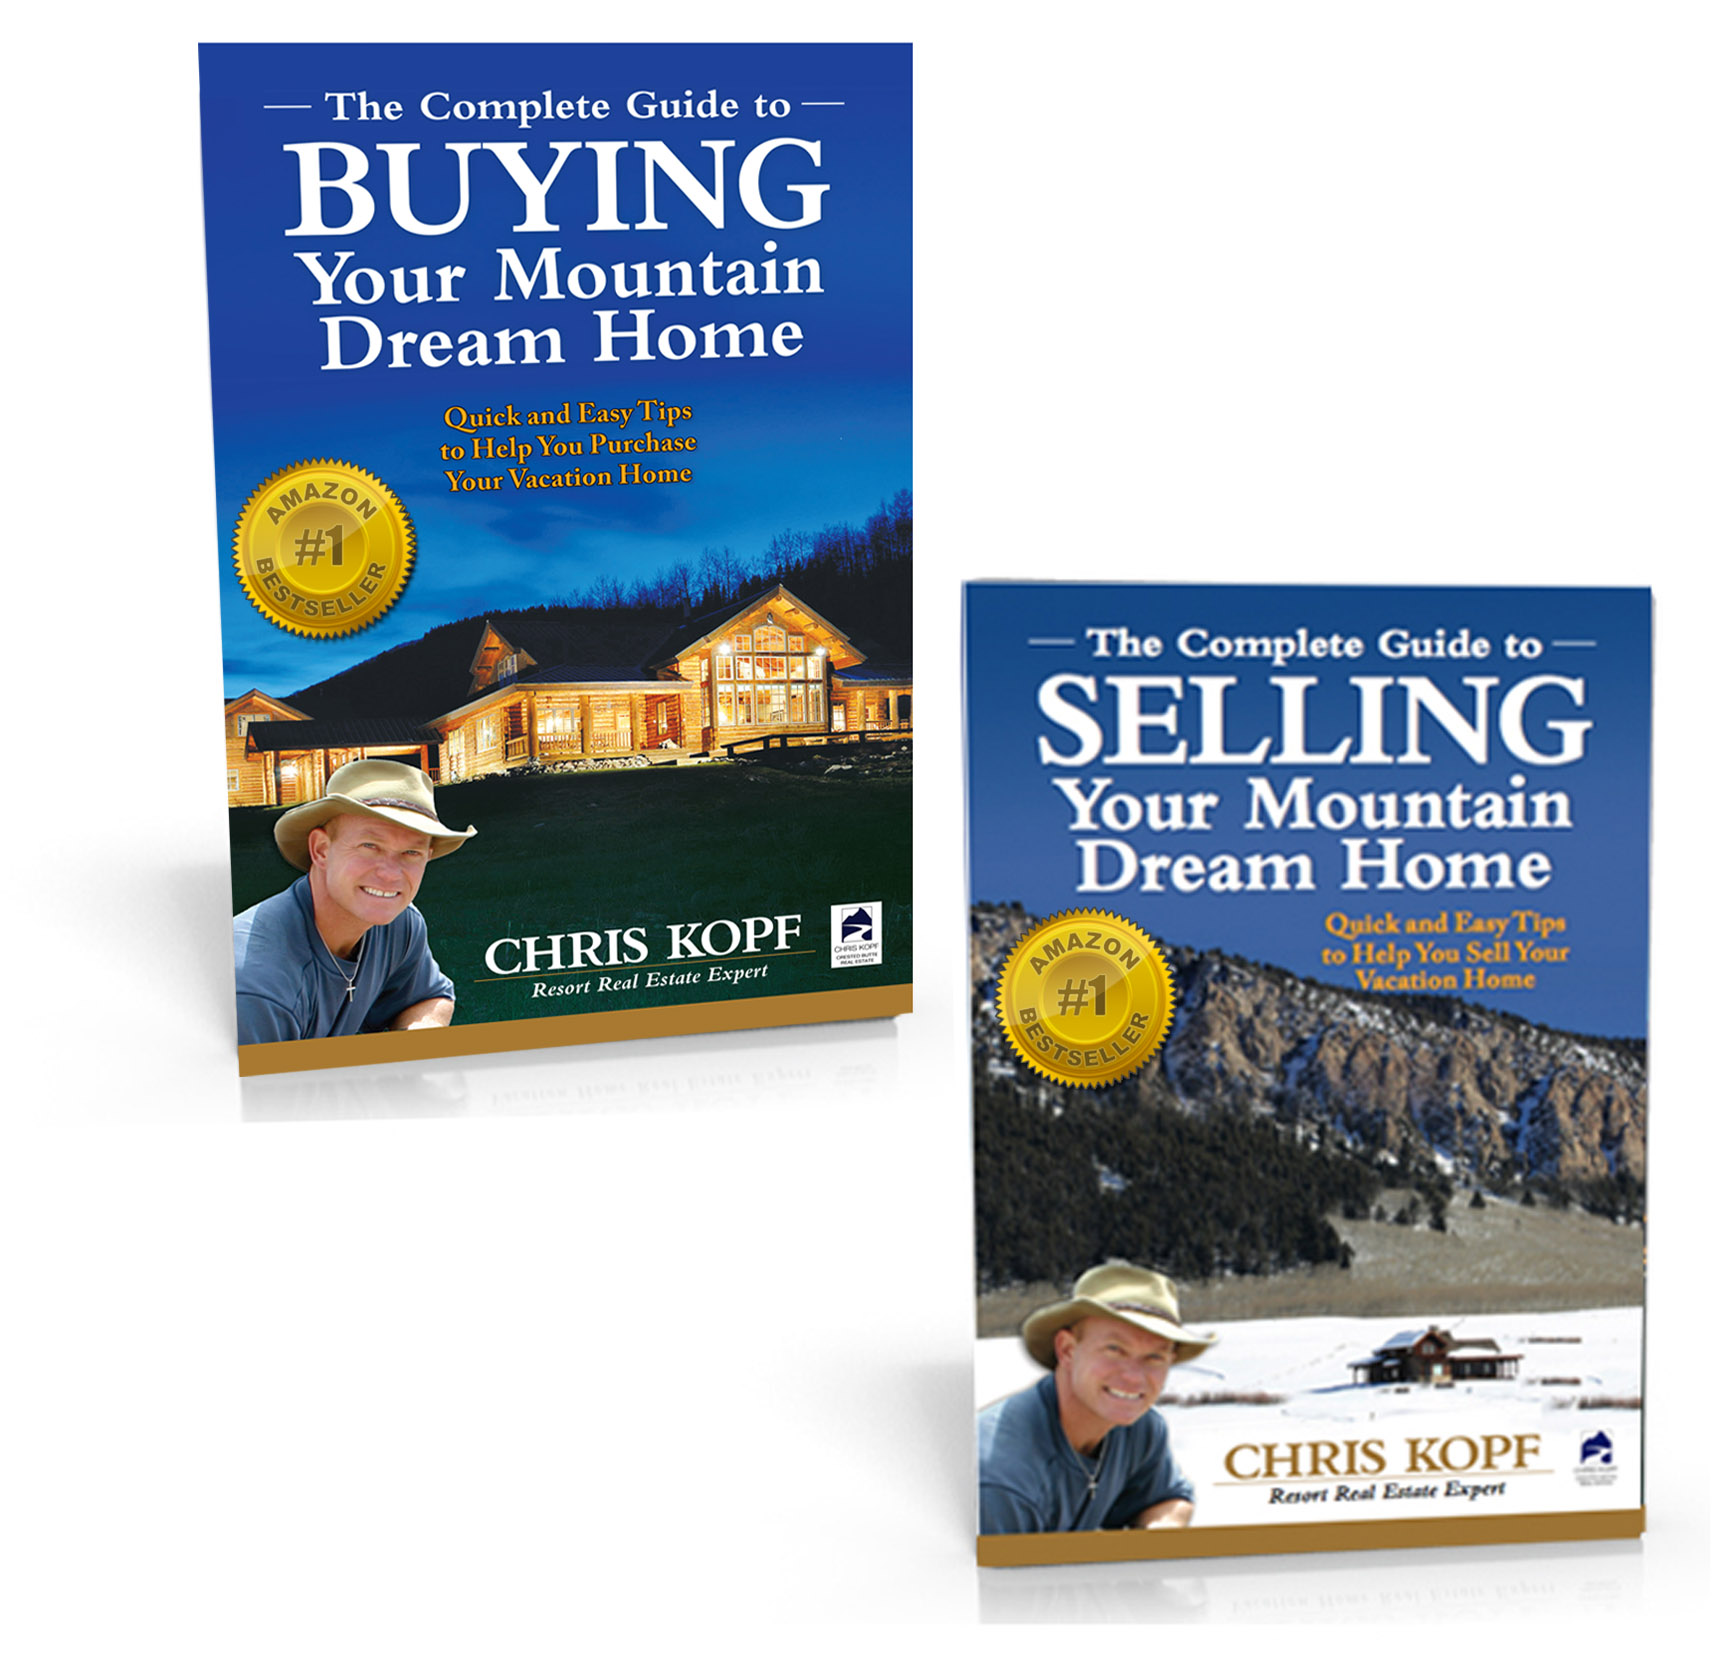 Buying your mountain dream home